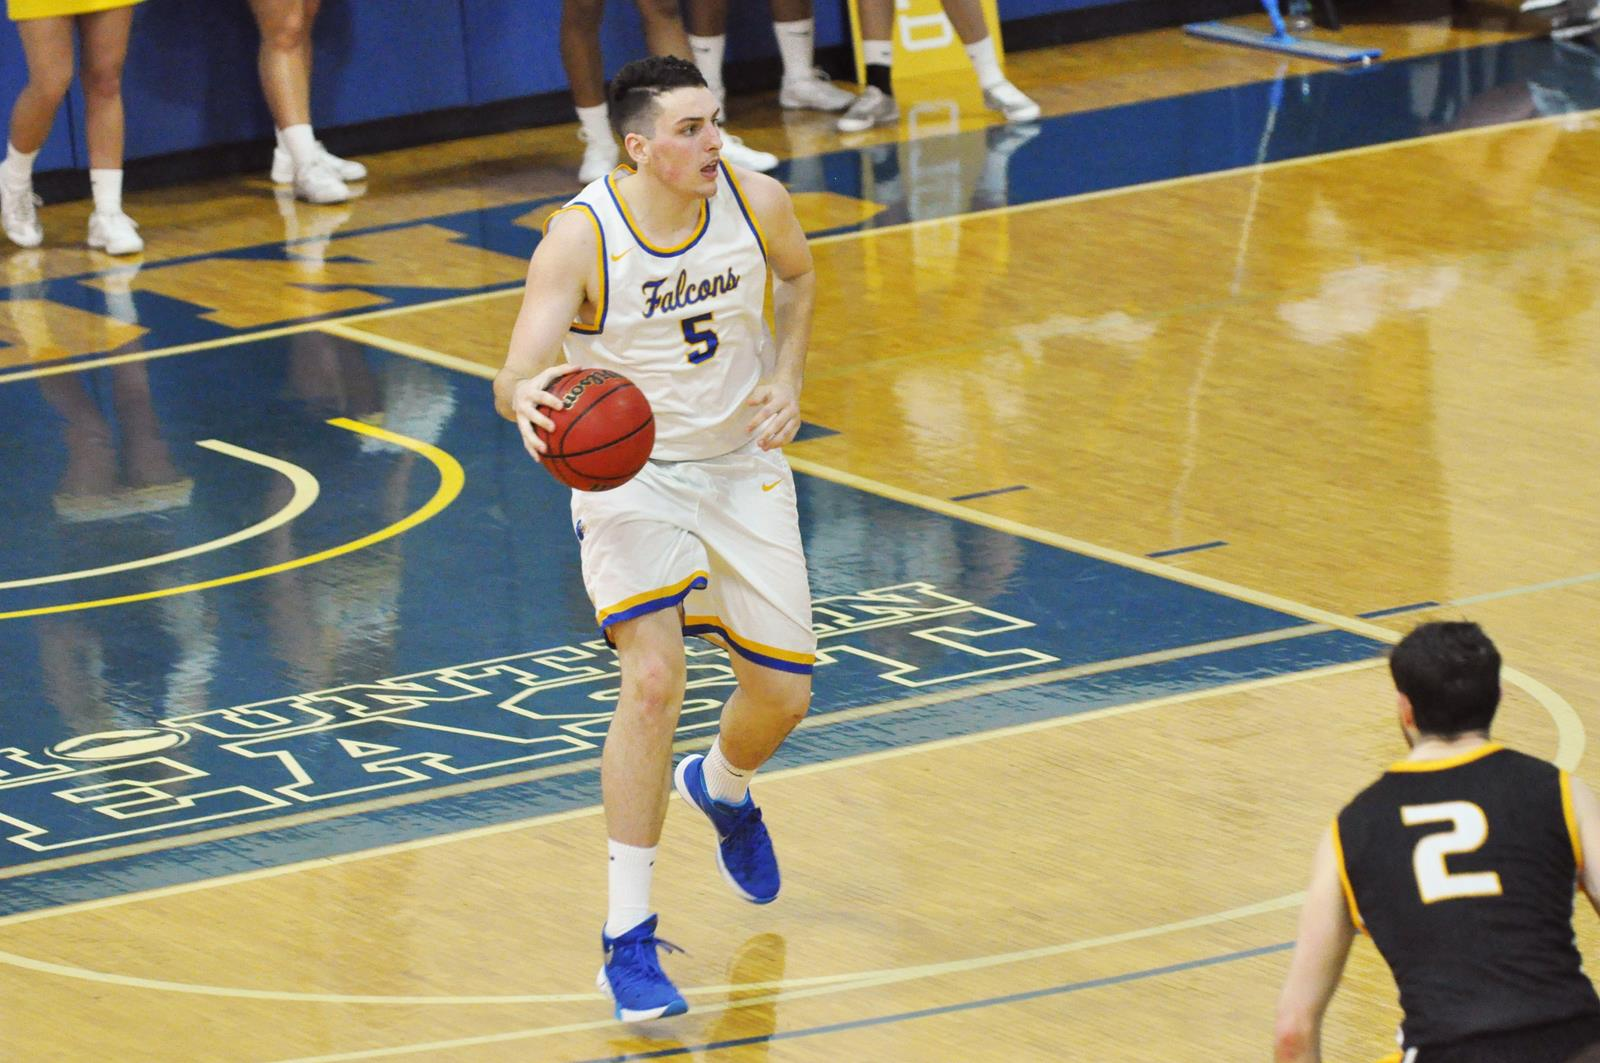 Oliver Megins Men S Basketball Notre Dame College Athletics